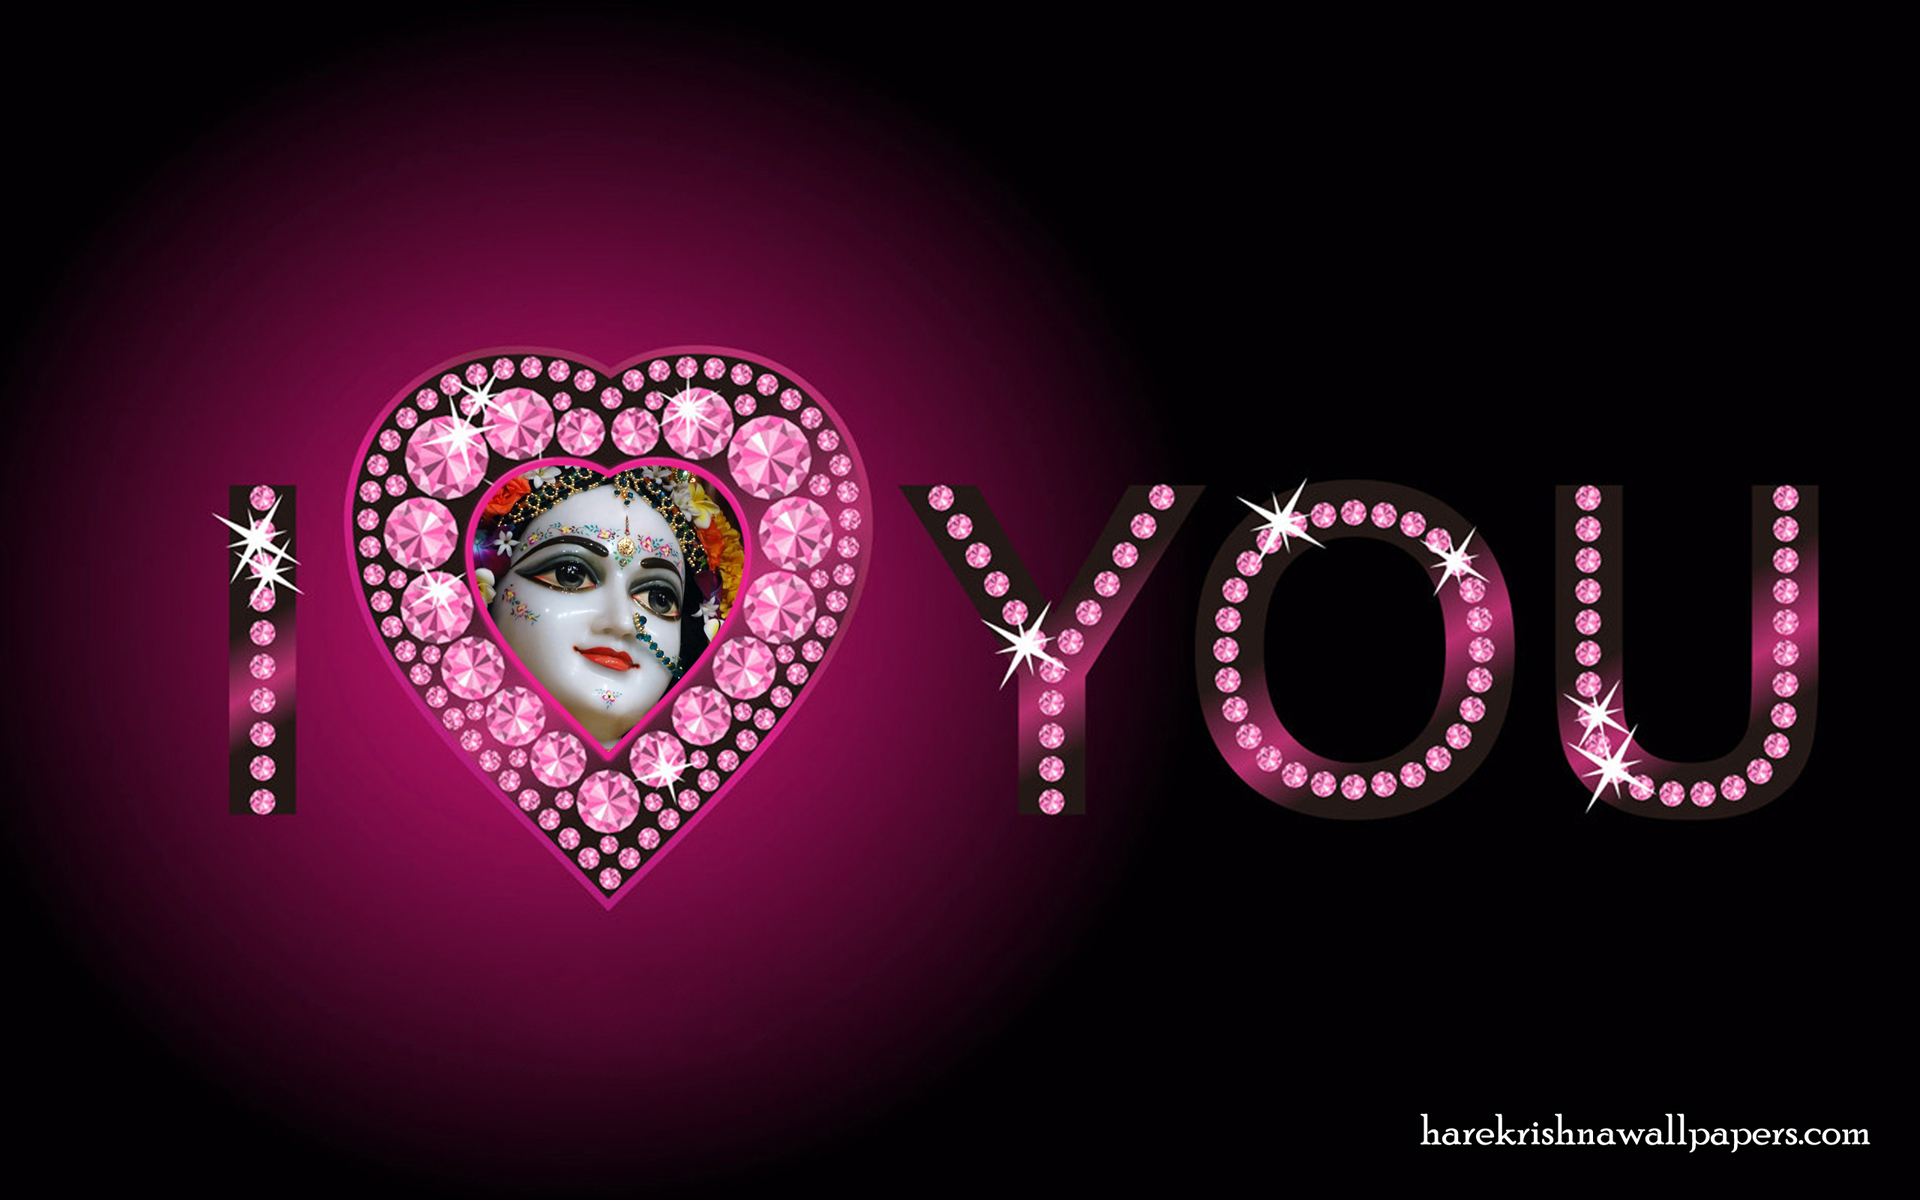 I Love You Radharani Wallpaper (013) Size 1920x1200 Download